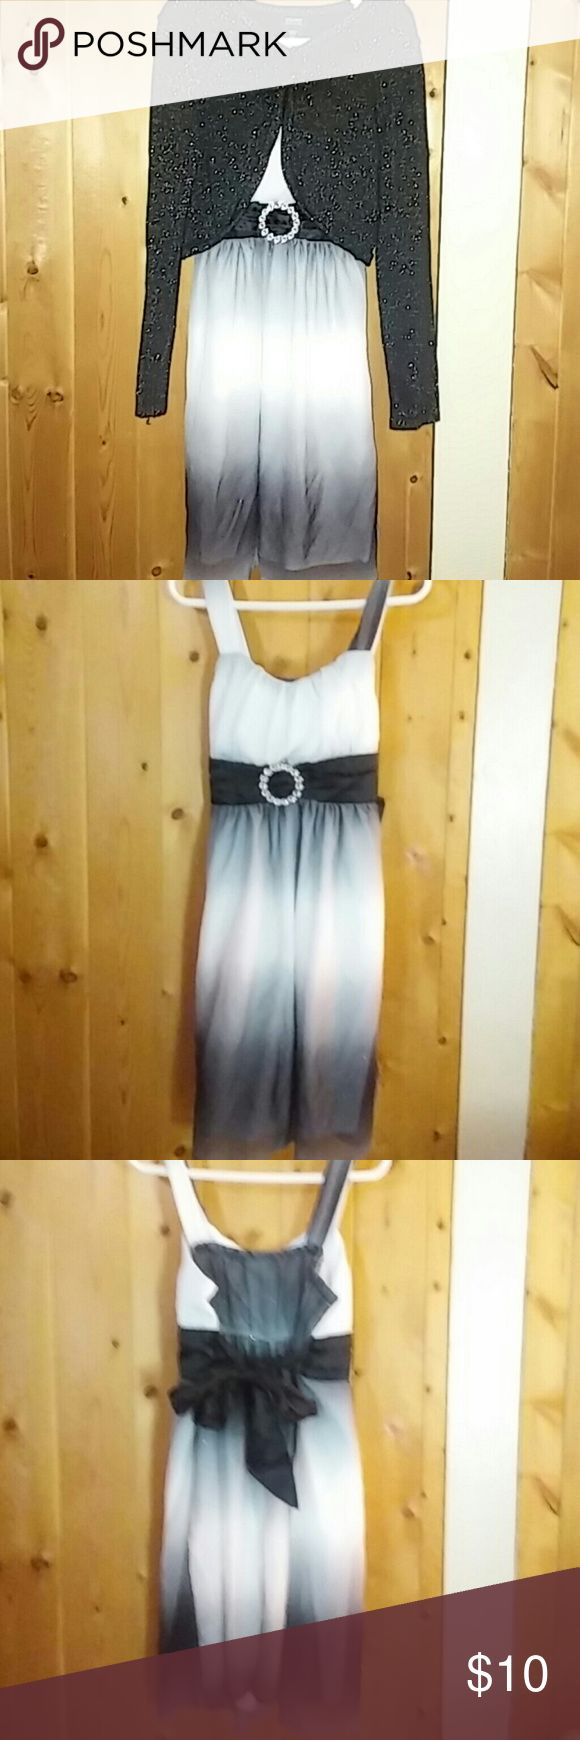 Dress and cardigan Ombre black and white dress with sparkles and ties in the back that comes with a sparkly black cardigan size 7/8 only worn once Holiday Edition Dresses